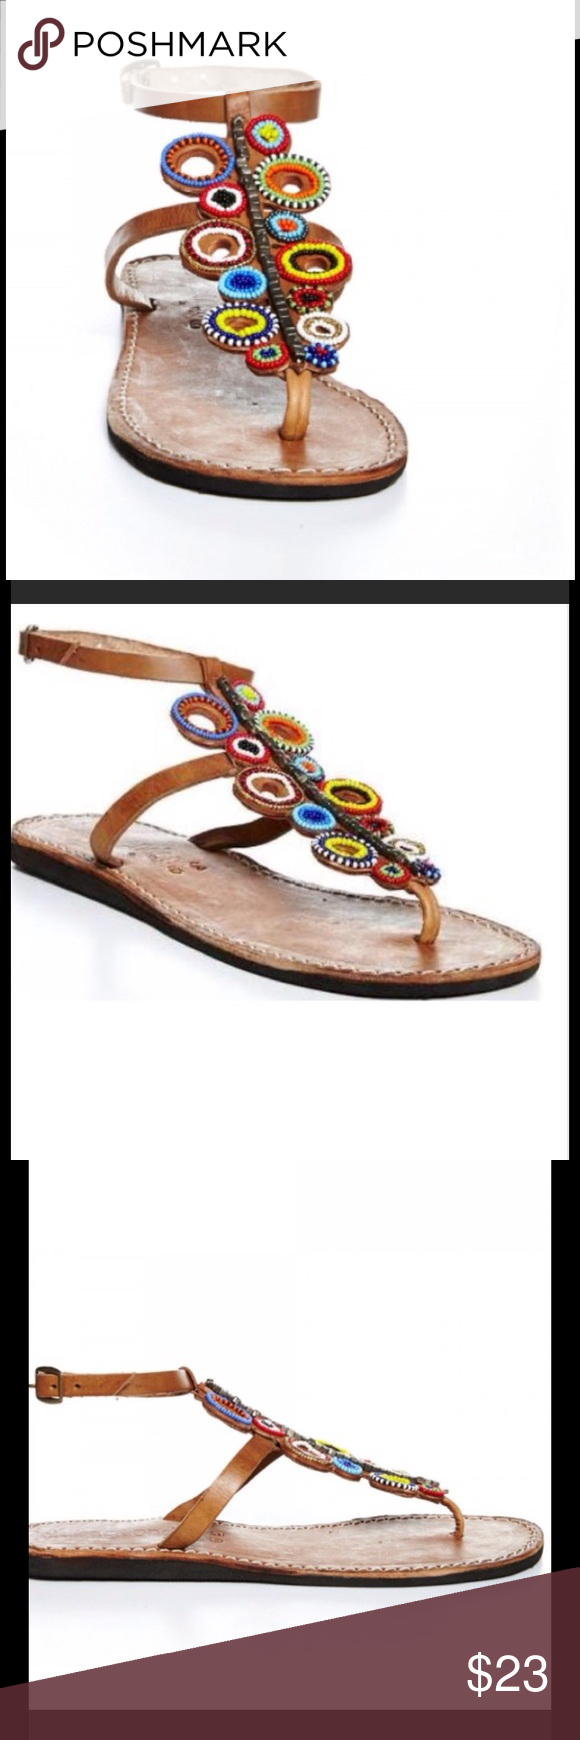 Laidback London Beaded Sandals from Anthro-10/11 Great beaded sandals, best on a 10-11- worn once! Anthropologie Shoes Sandals